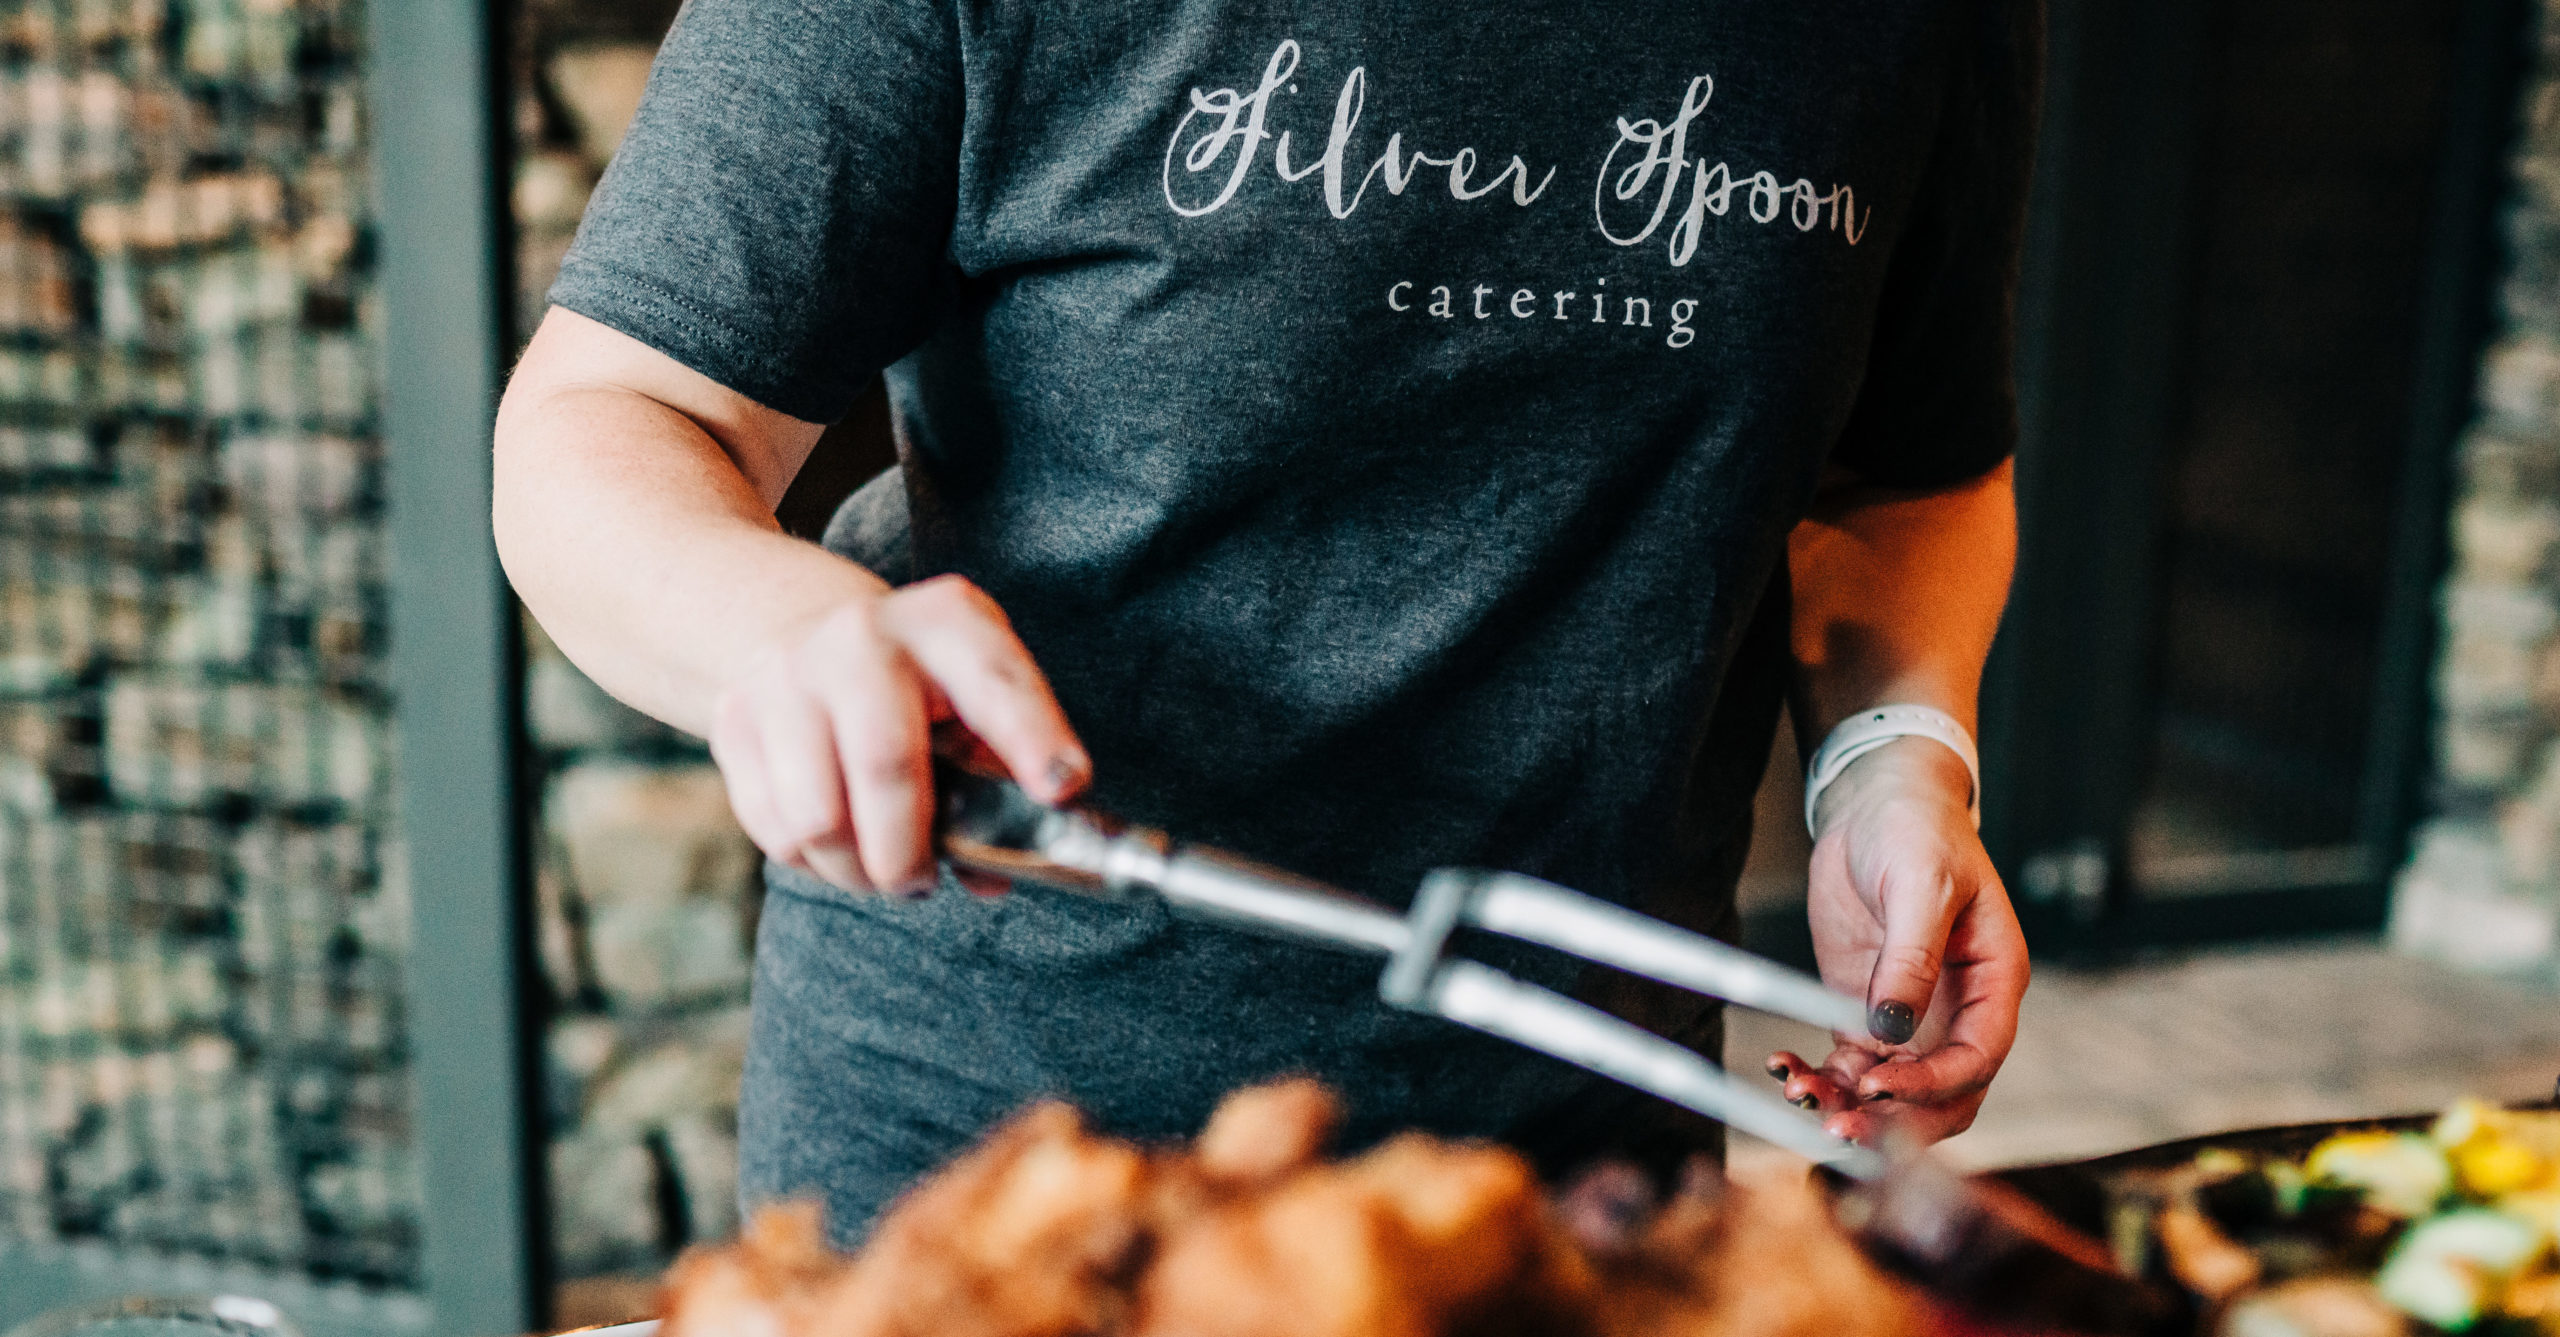 Silver Spoon Catering in Tullahoma, TN